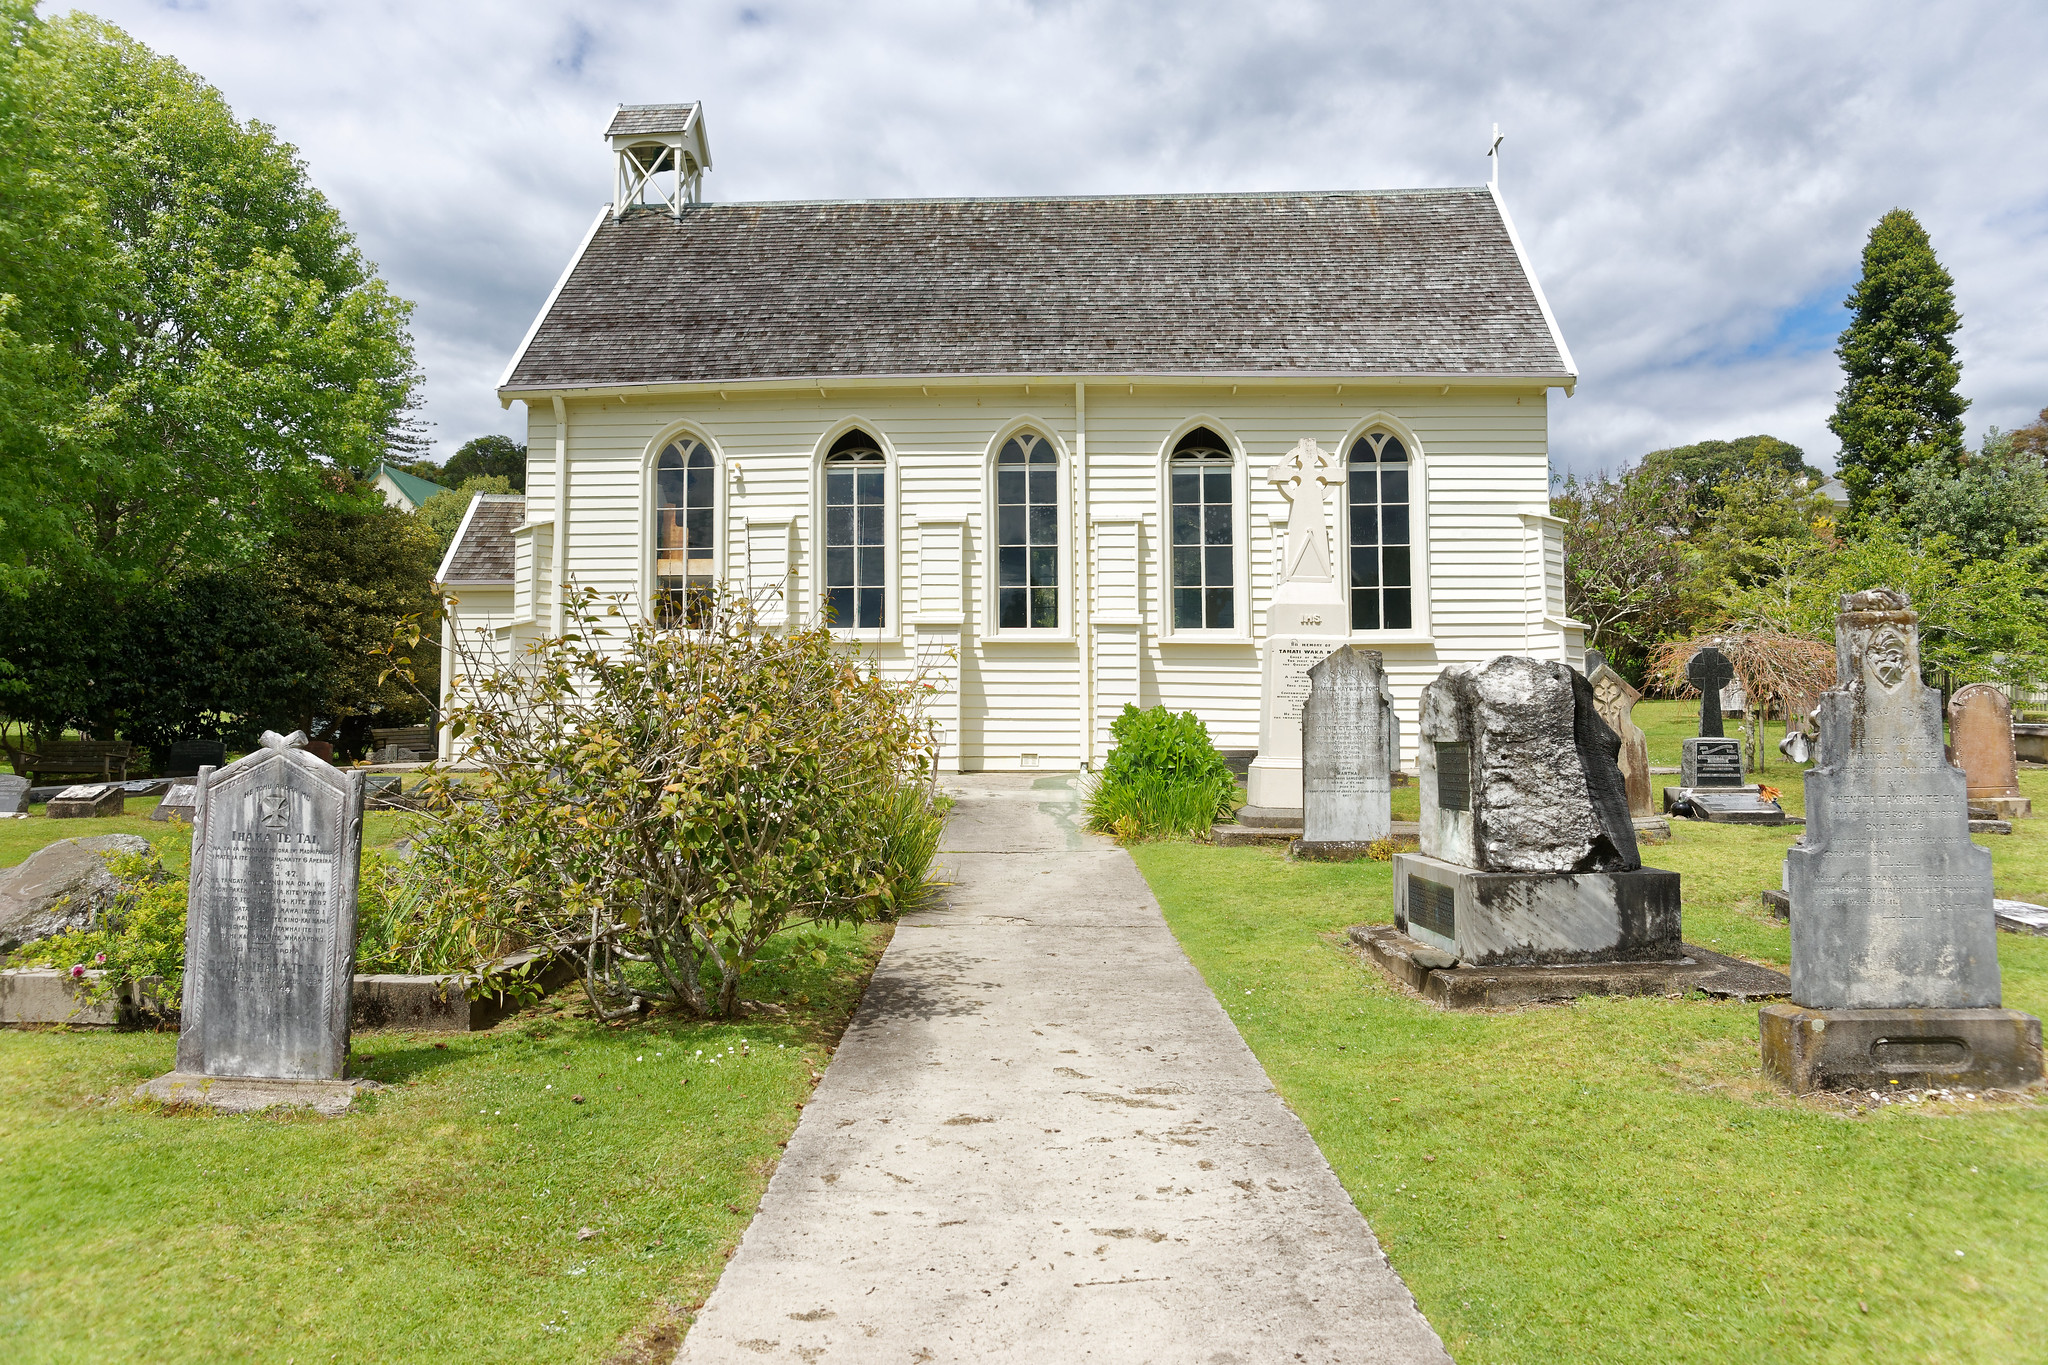 Christ Church - Russell, New Zealand